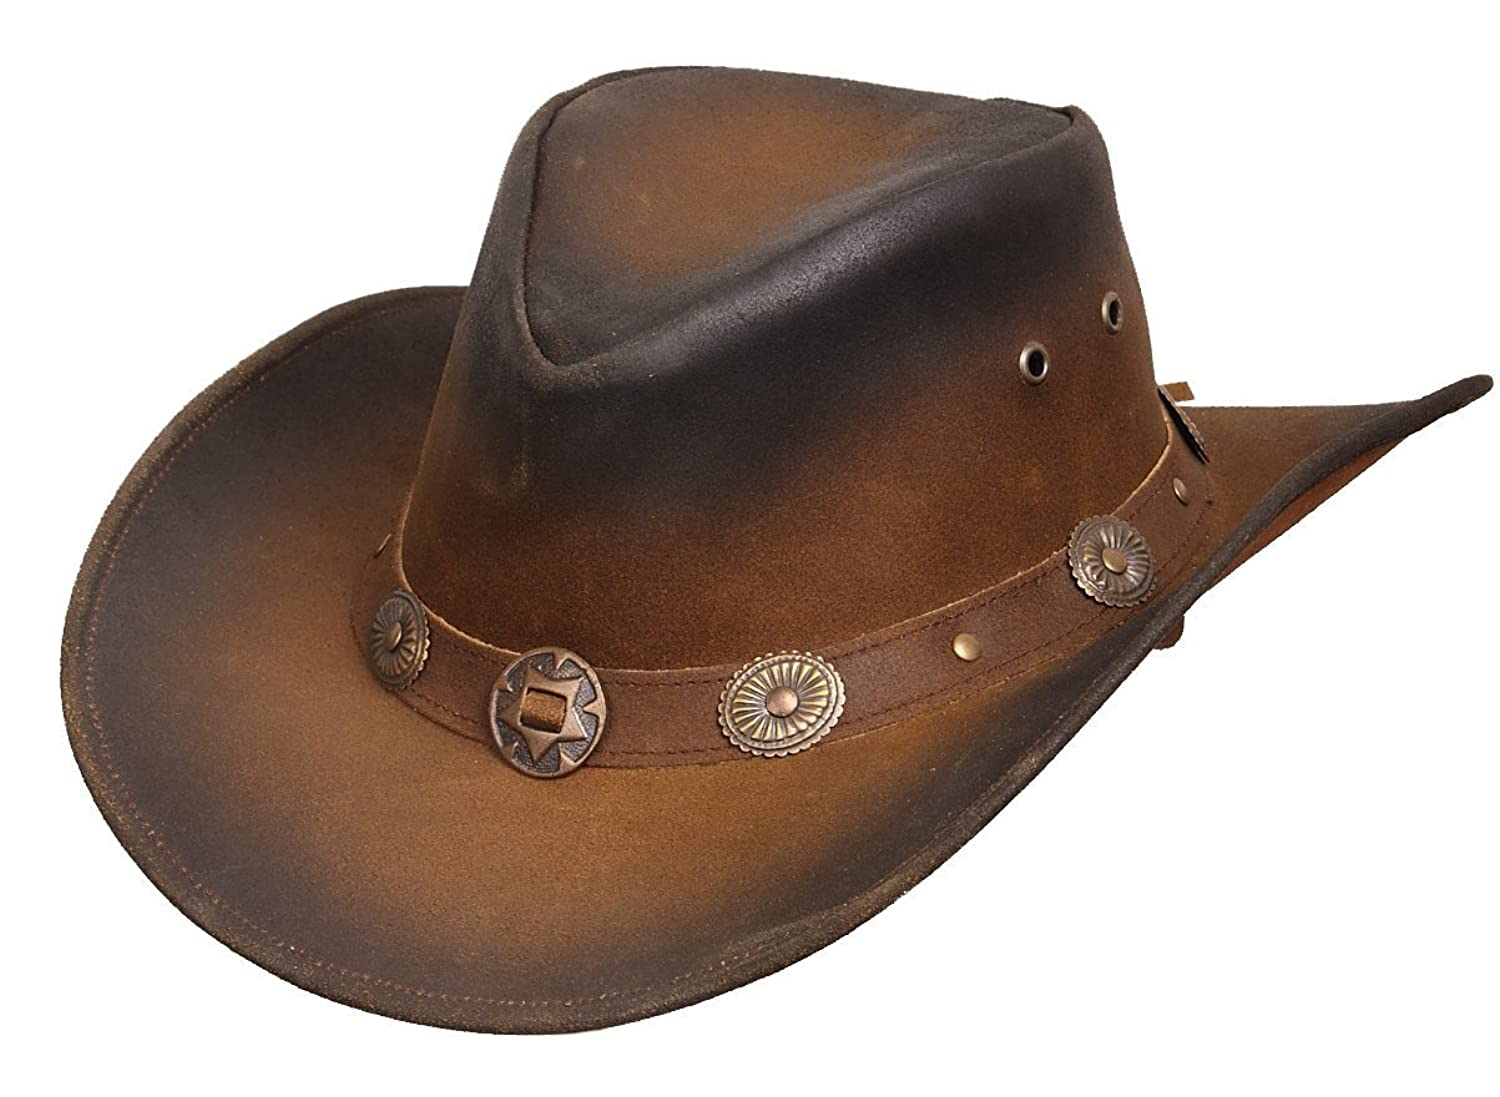 829b841f48d New Leather Cowboy Western Aussie Style HAT Conchos Size S-XXL